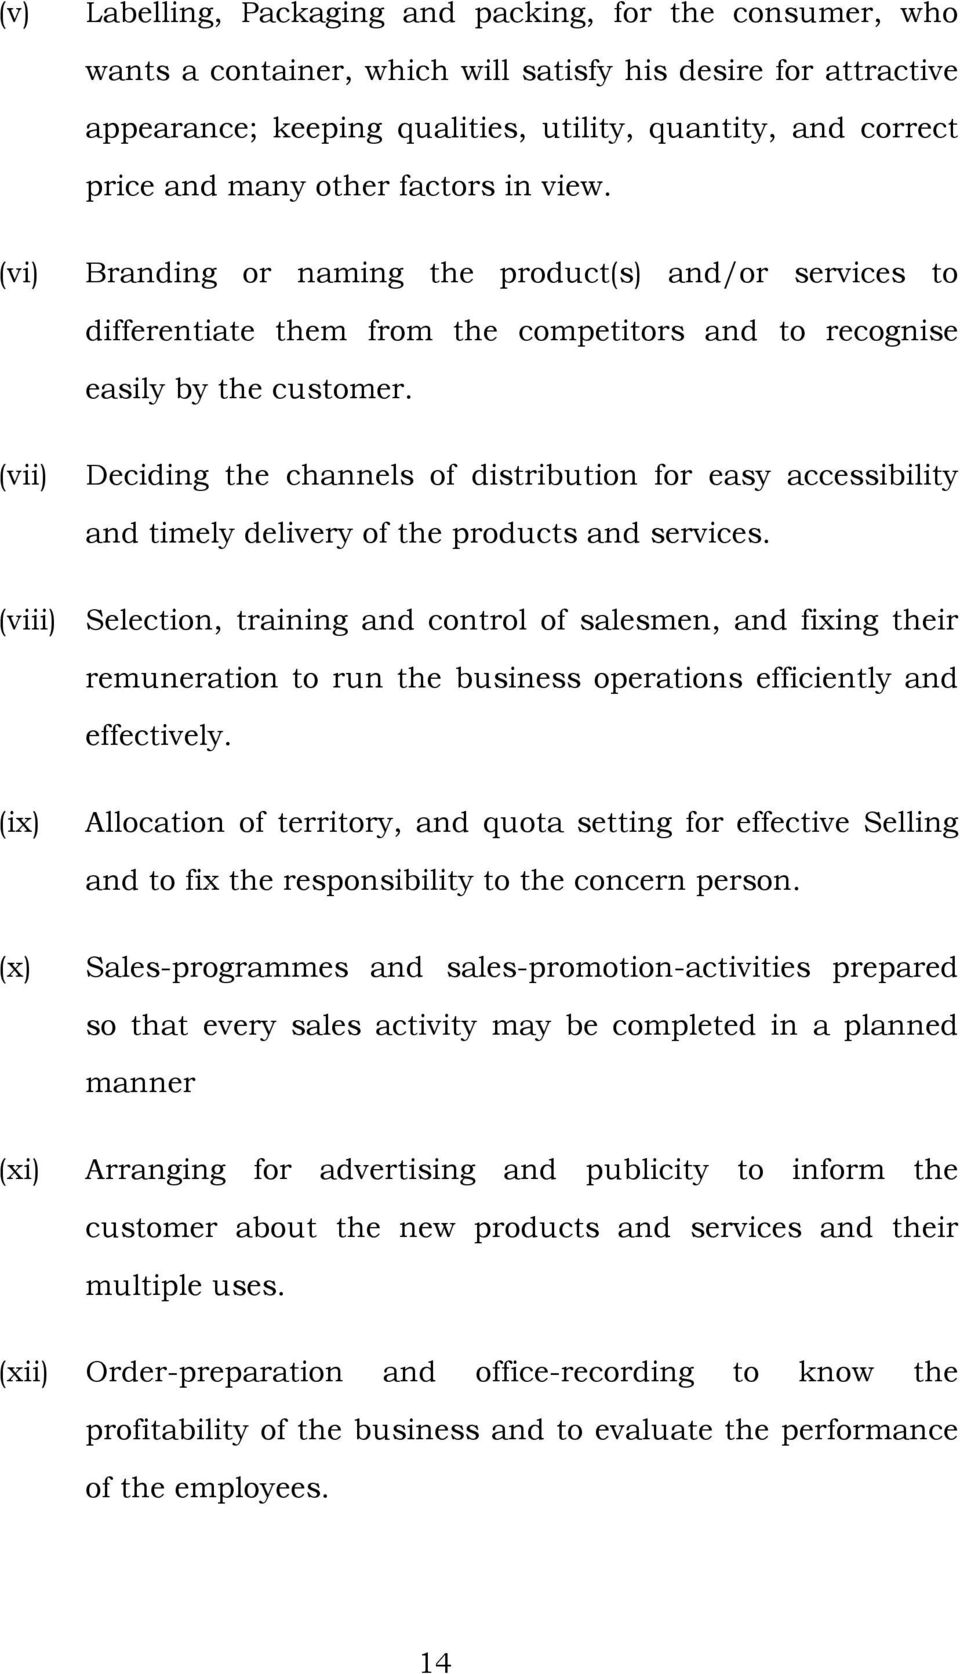 (vii) Deciding the channels of distribution for easy accessibility and timely delivery of the products and services.